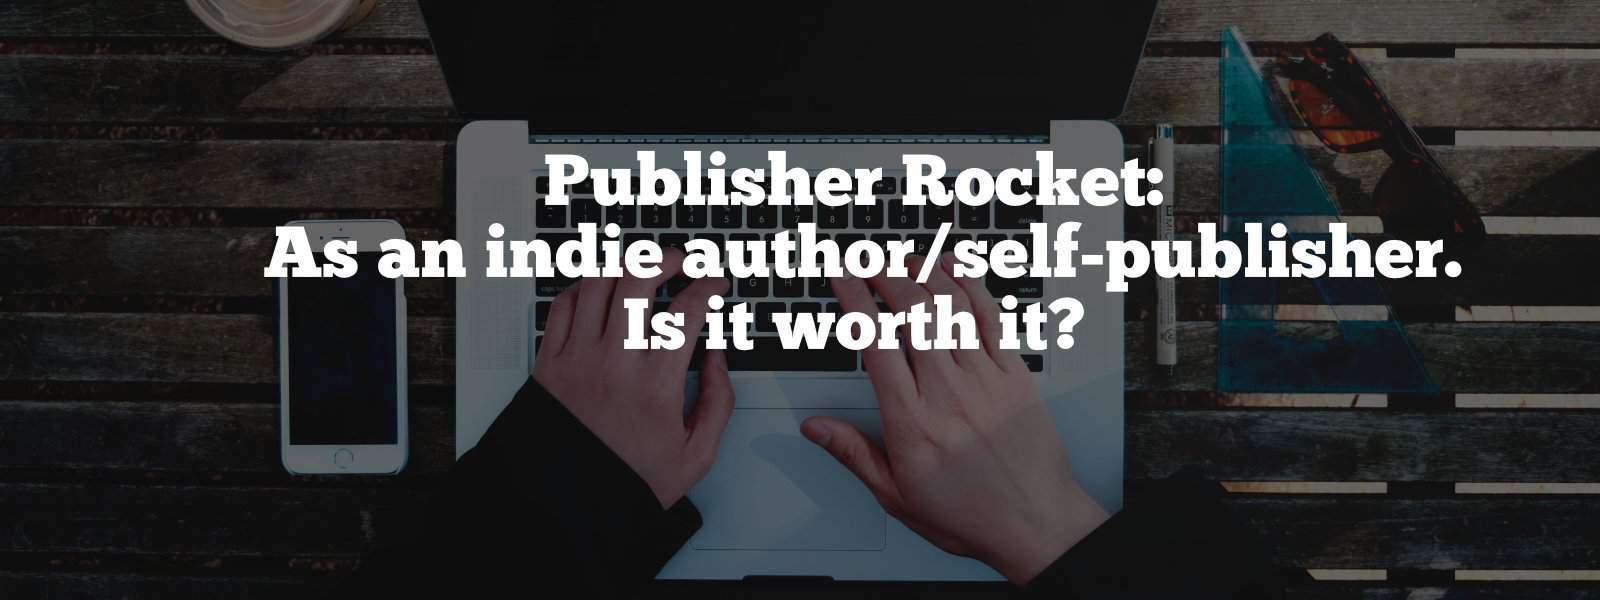 publisher-rocket-is-it-worth-it